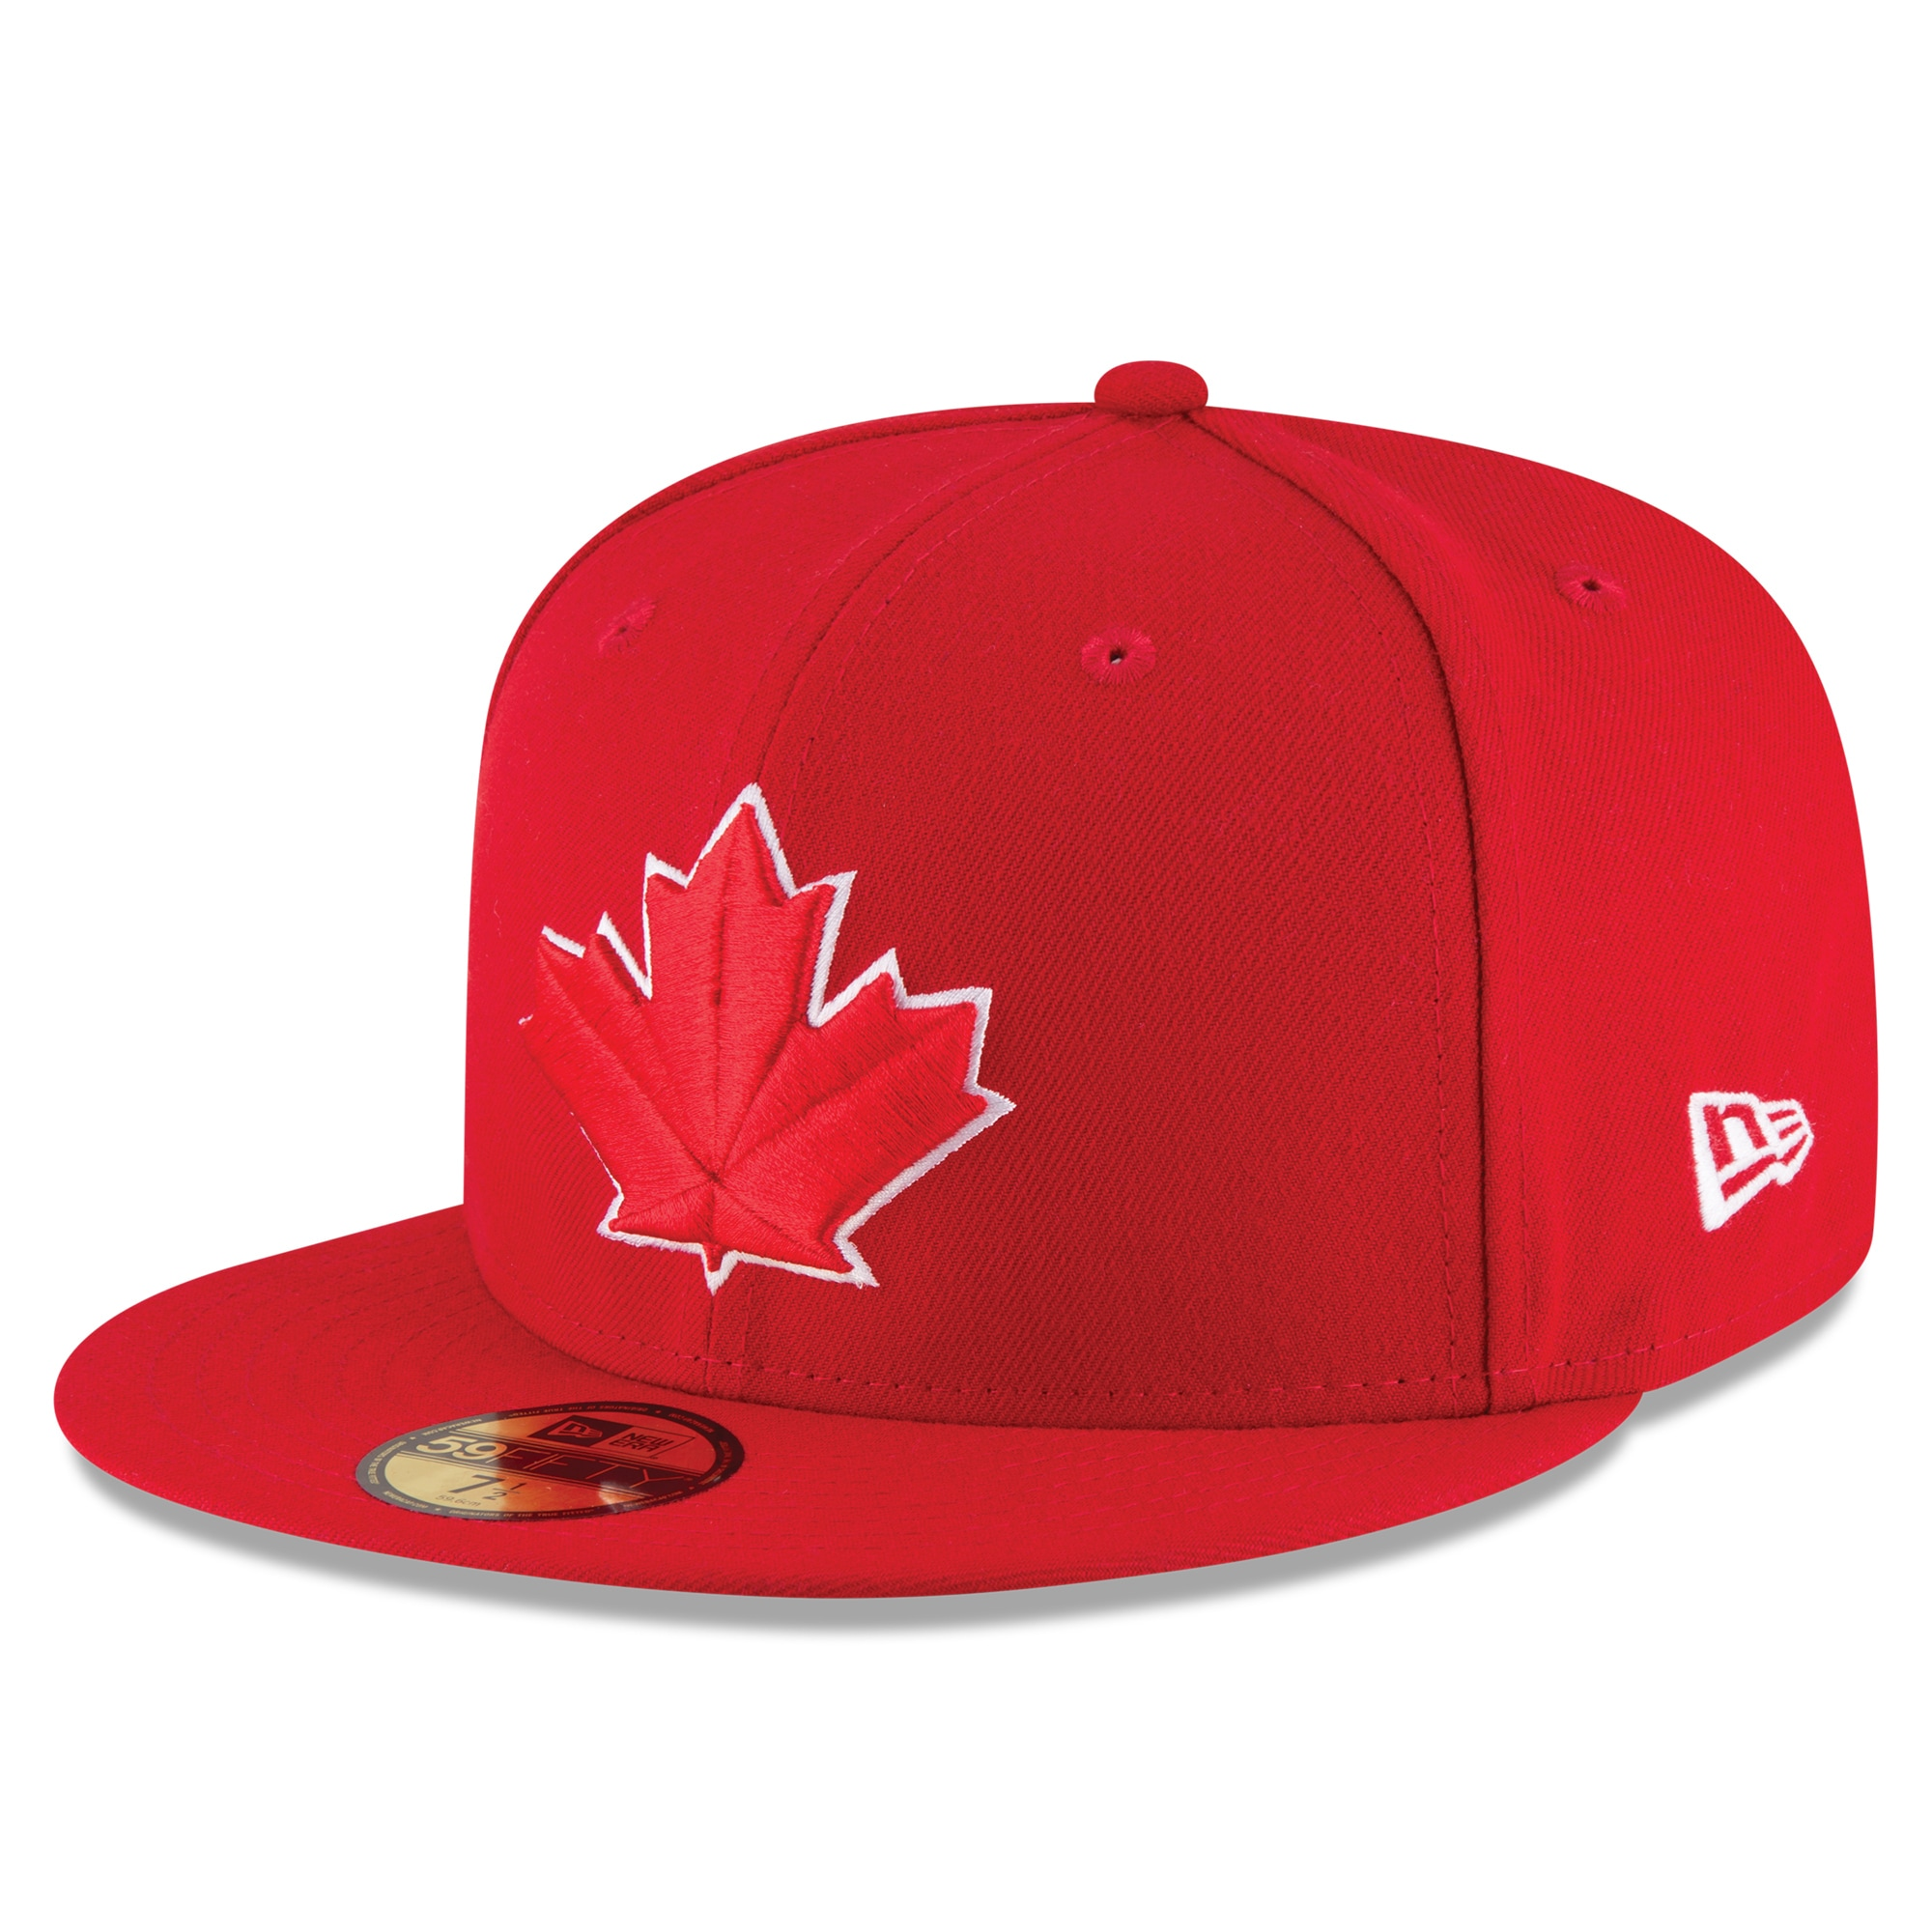 Toronto Blue Jays New Era 2017 Authentic Collection On-Field 59FIFTY Fitted Hat - Scarlet